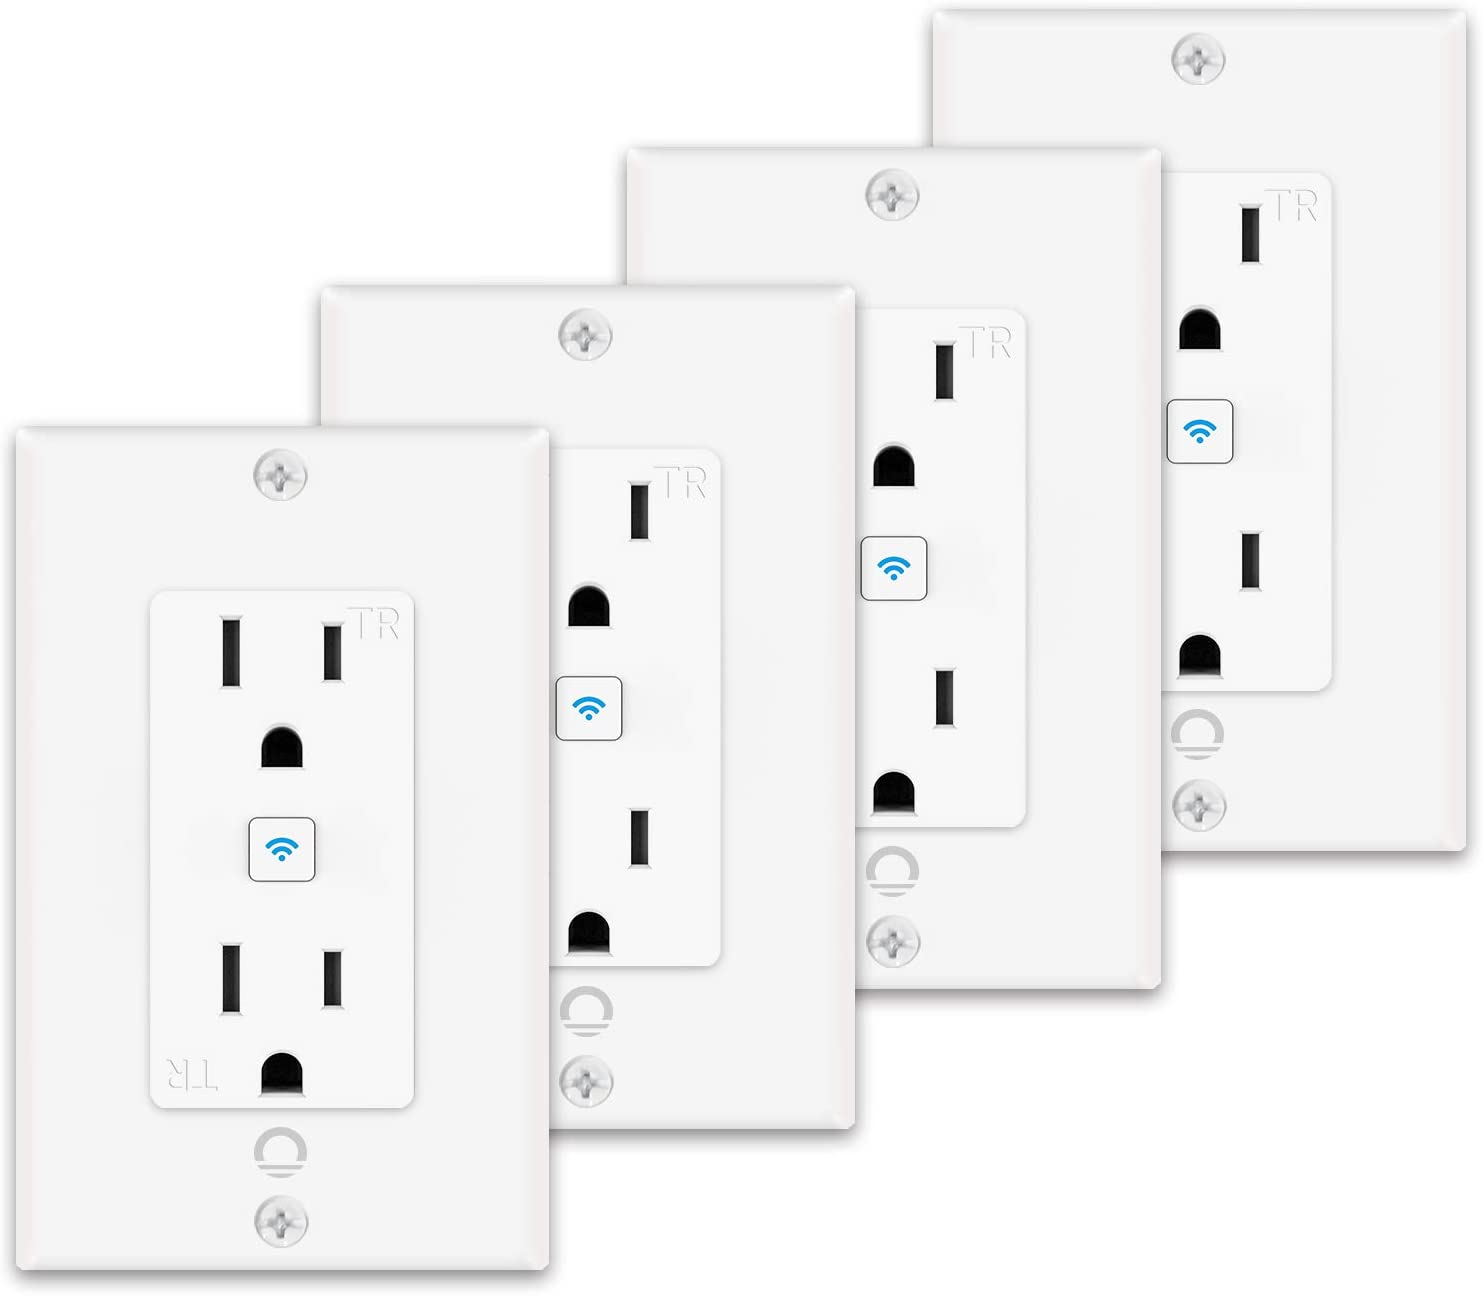 Lumary Smart Wi-Fi In-Wall Outlet 15 Amp 125 Volt Tamper Resistant Split Duplex Receptacle, Individual Control of 2 Plugs, Compatible with Alexa, Google Home (No Hub required)